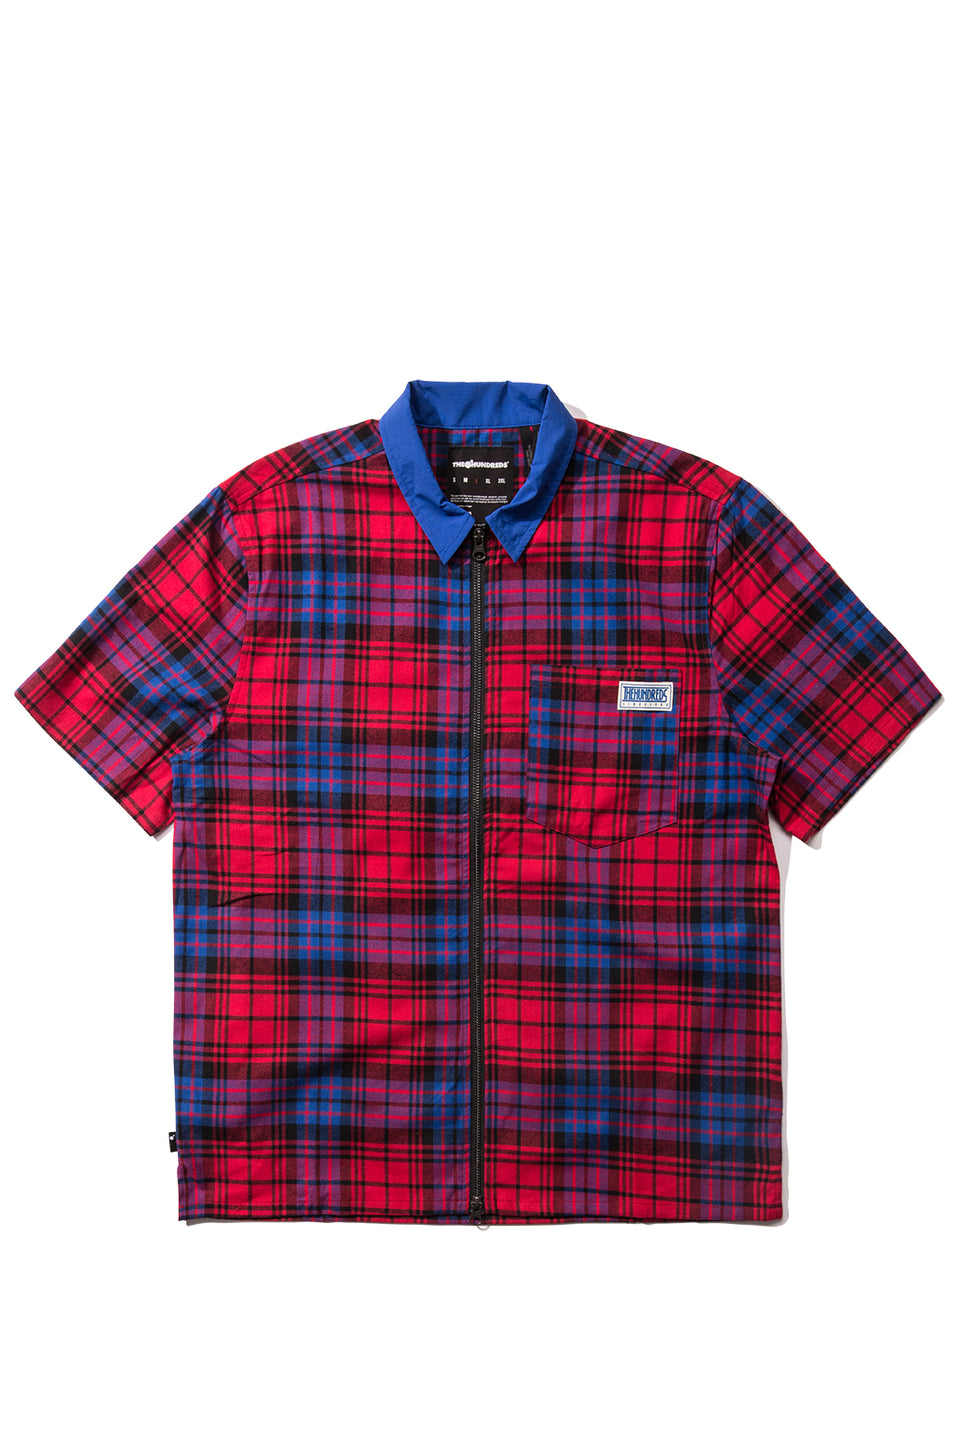 Northwest SS Woven